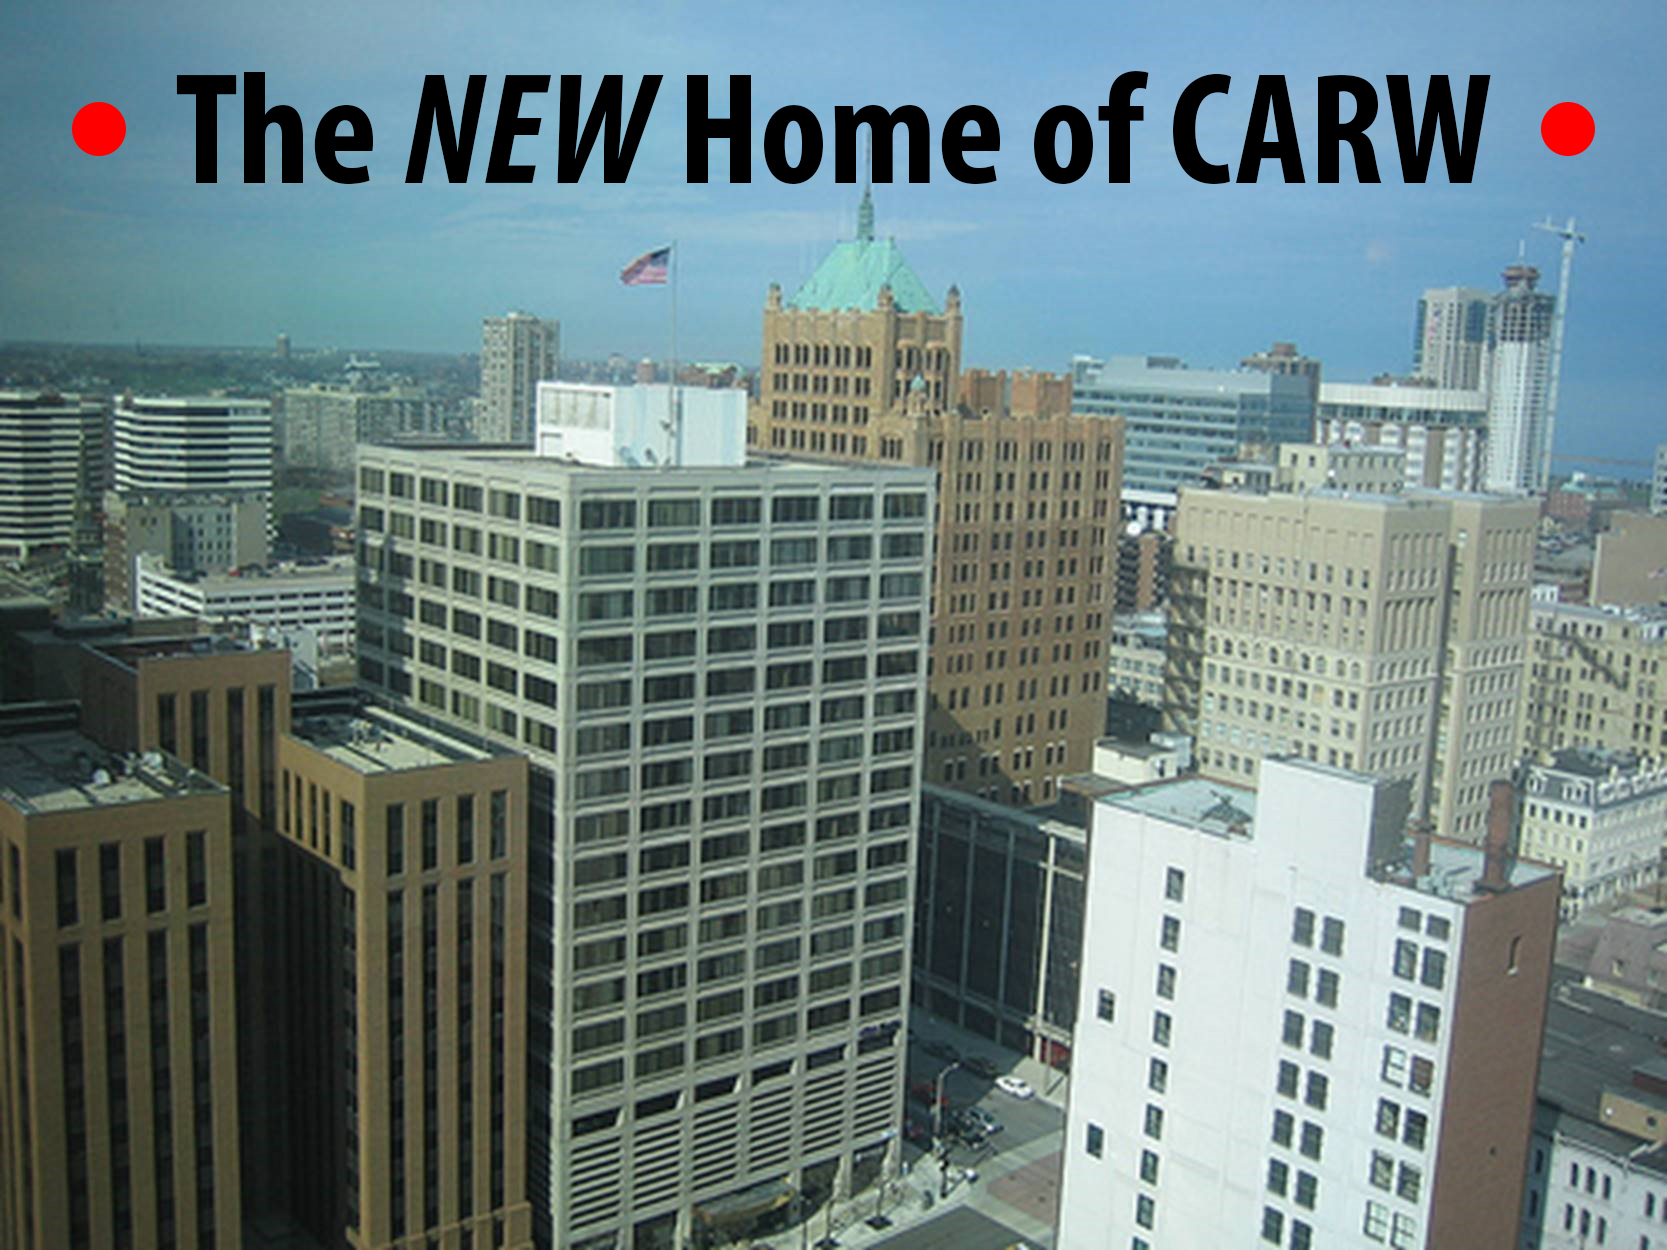 home of CARW